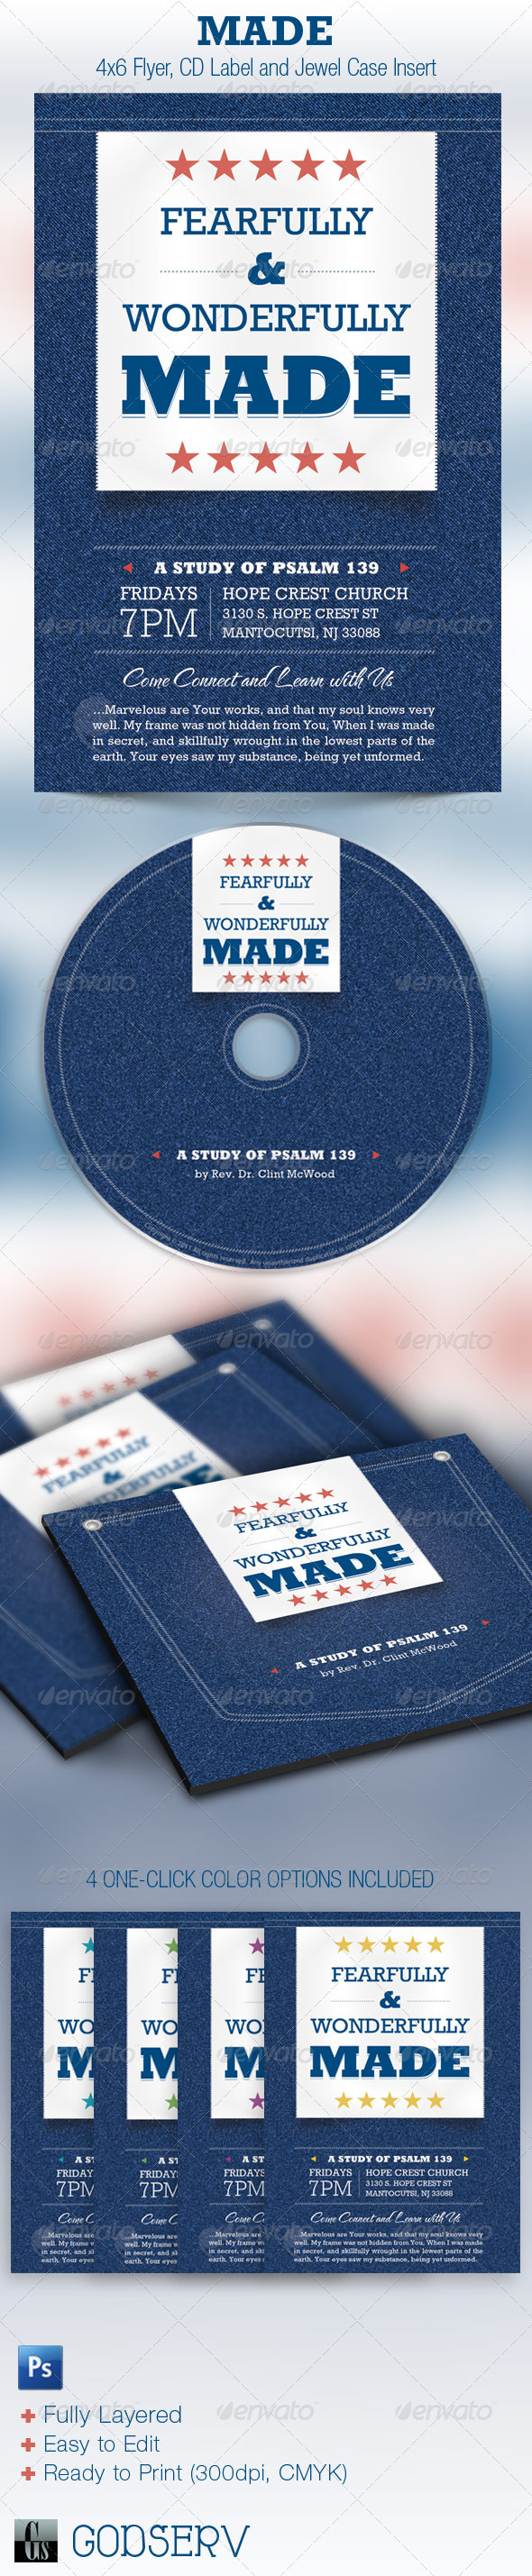 Wonderfully Made Church Flyer CD Template - Church Flyers